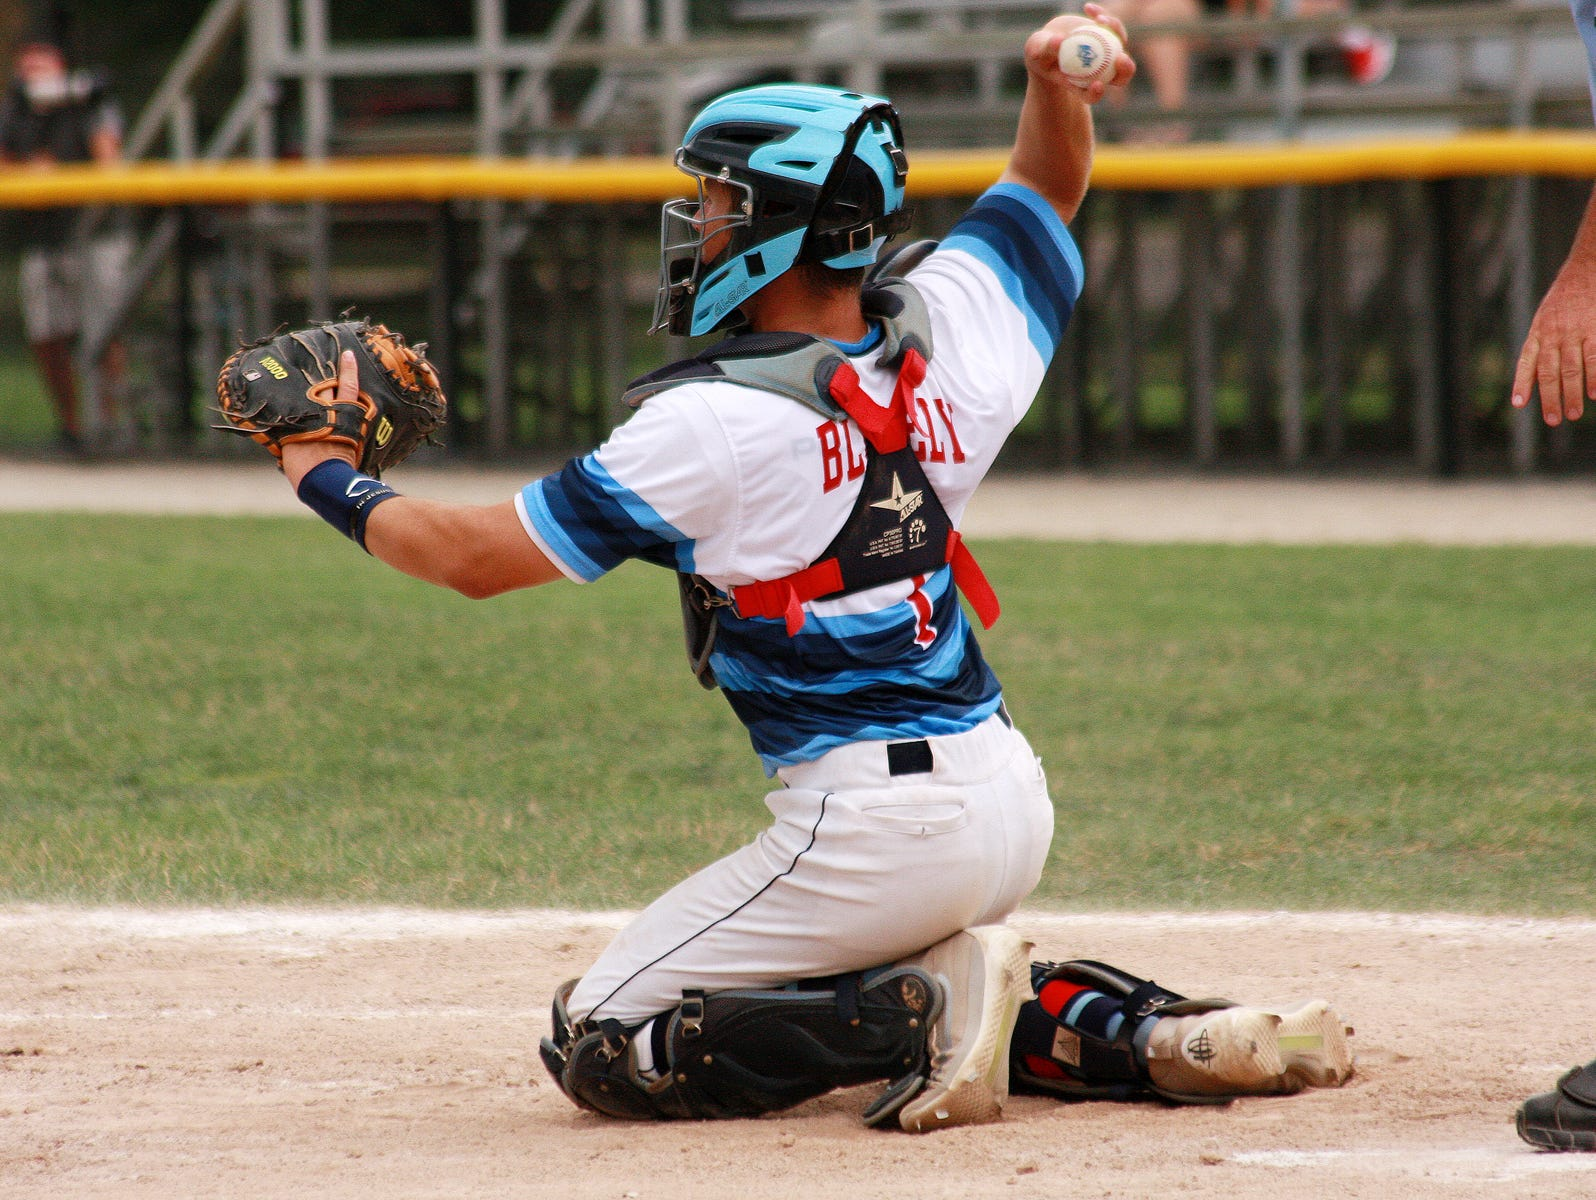 Catcher Drew Blakely, formerly of Gull Lake, plays for Midwest Athletics in Connie Mack regional on Thursday afternoon at Bailey Park